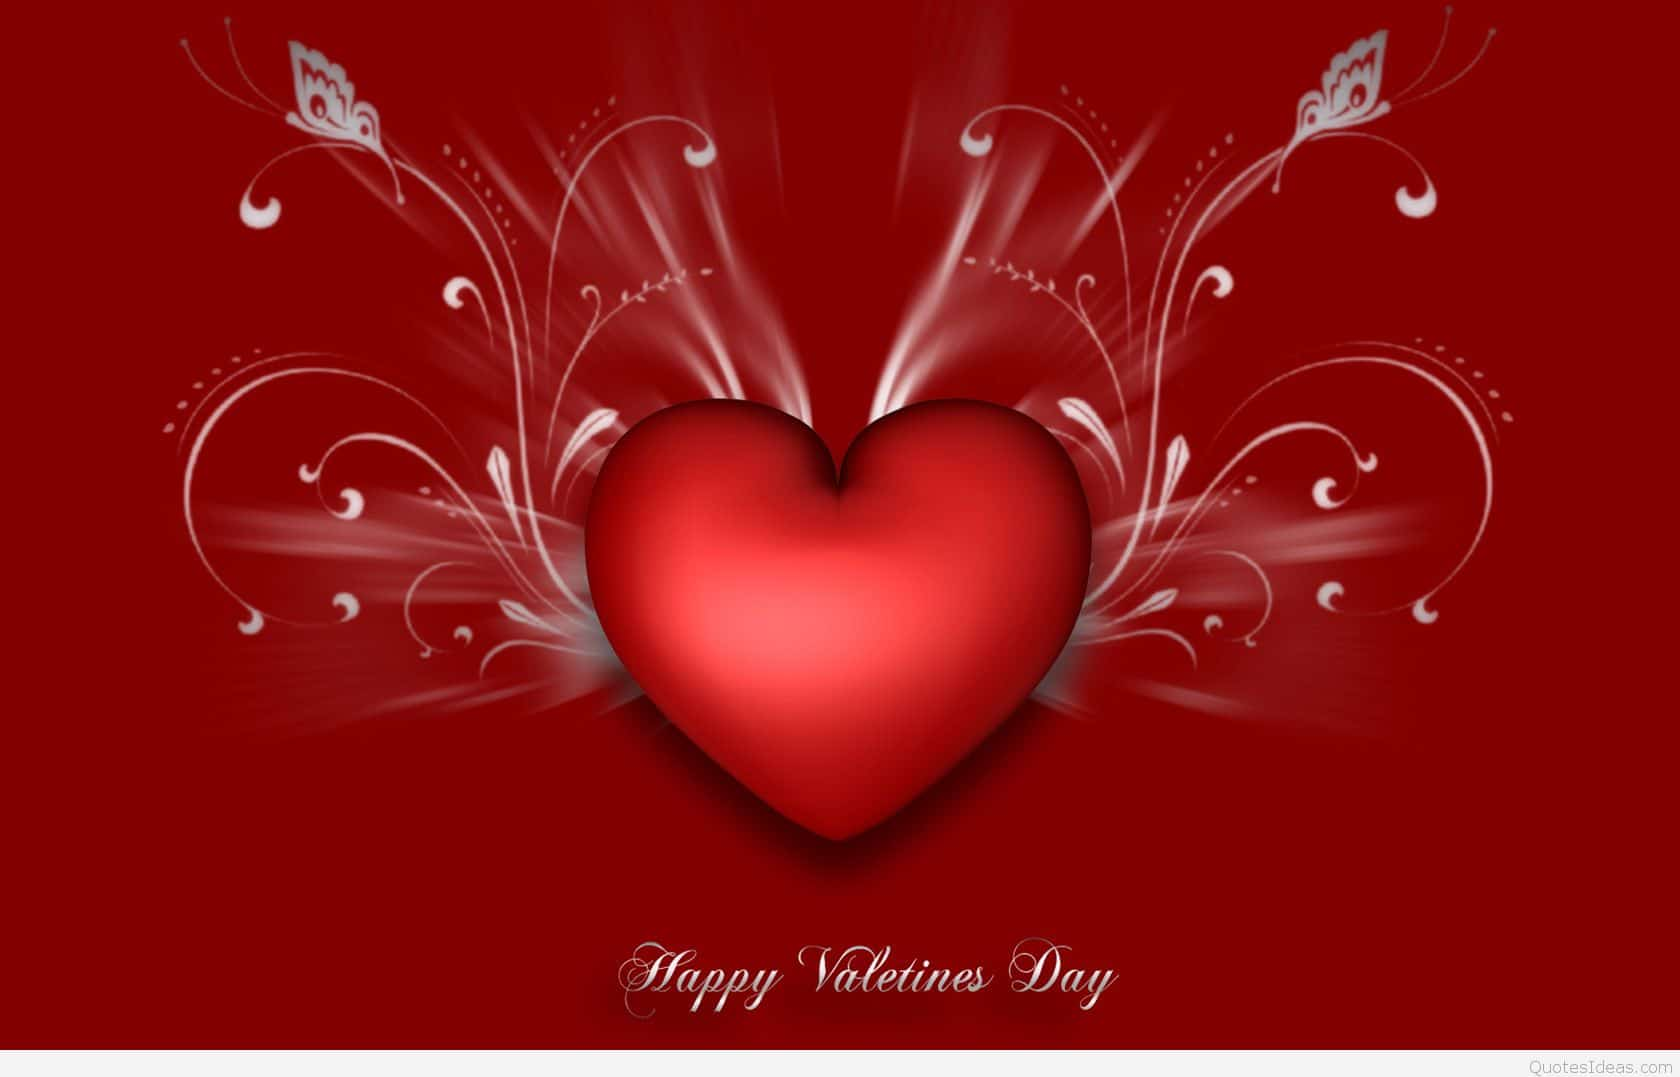 Valentien's day images and HD photos